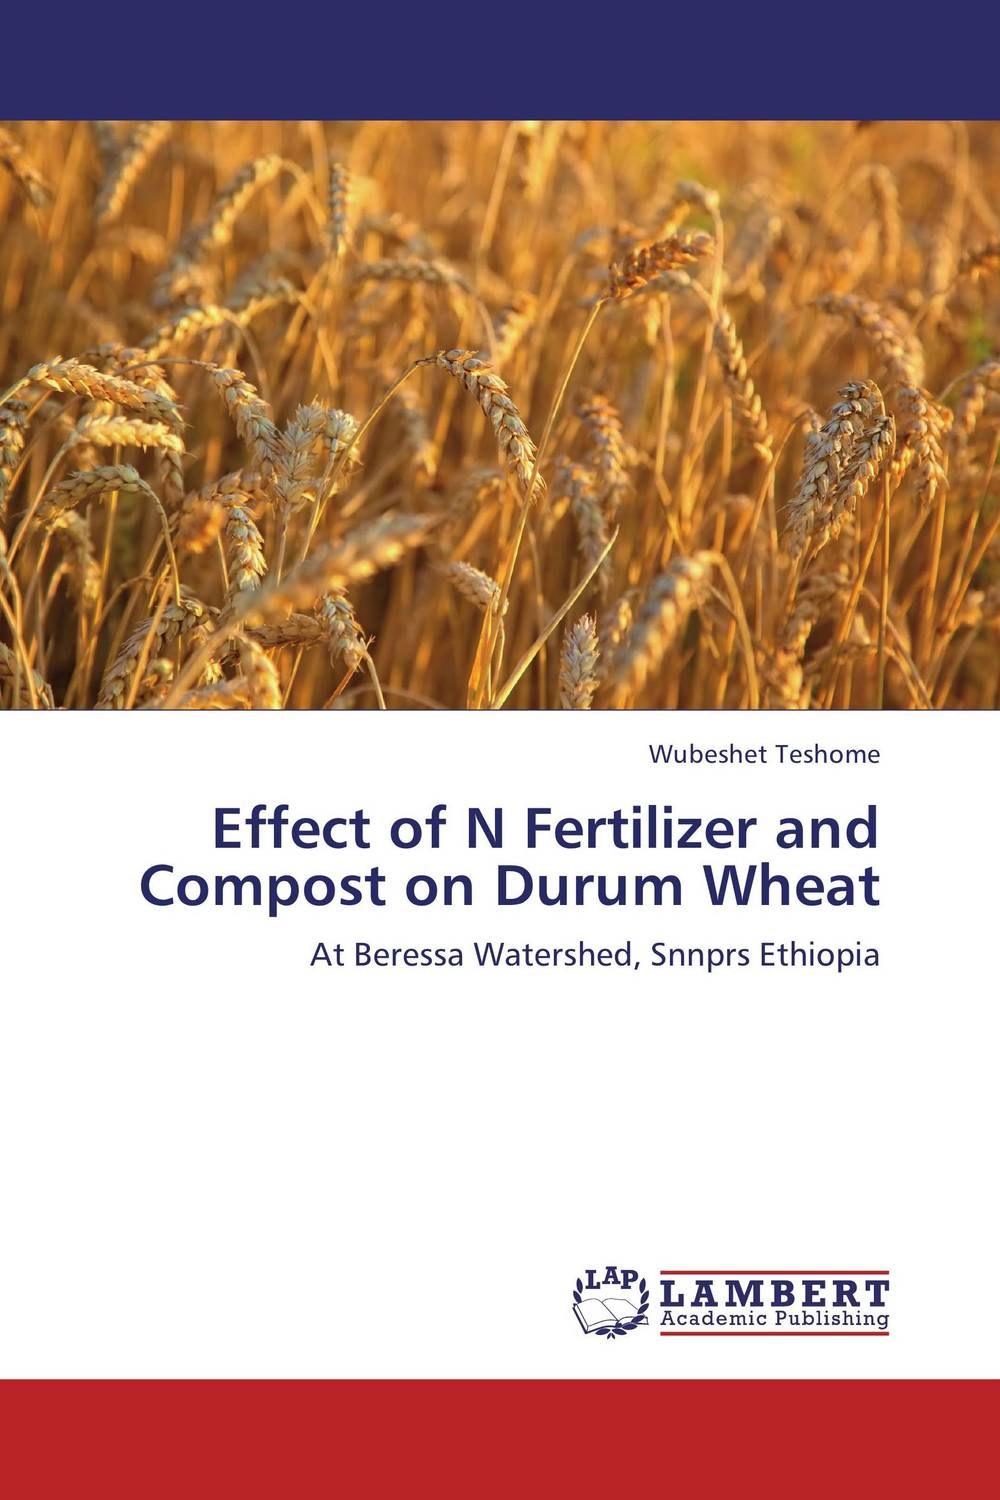 Effect of N Fertilizer and Compost on Durum Wheat tobias olweny and kenedy omondi the effect of macro economic factors on stock return volatility at nse